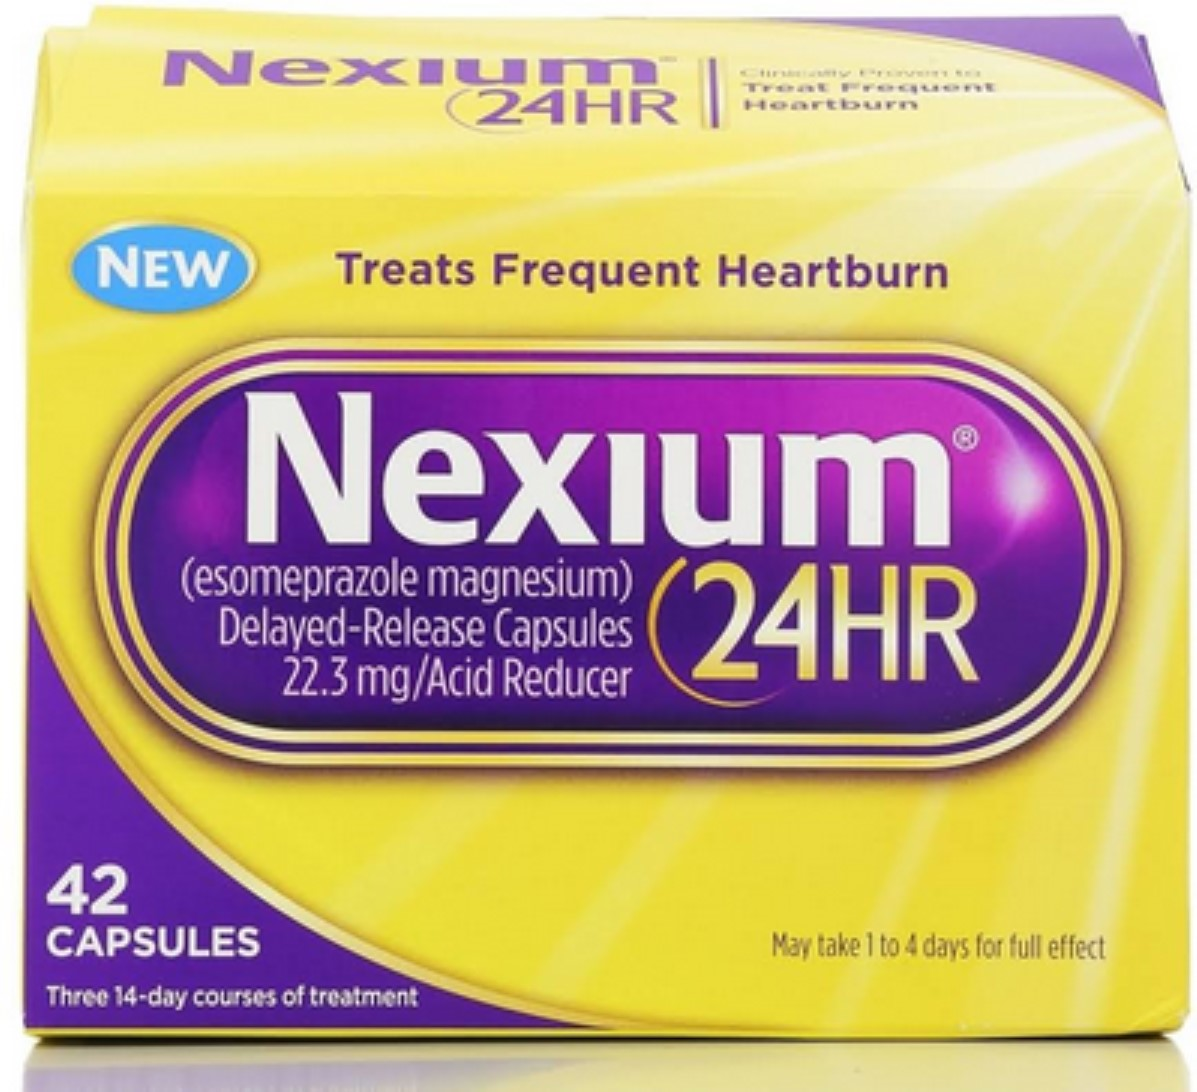 Nexium 24HR Capsules 42 ea (Pack of 6)